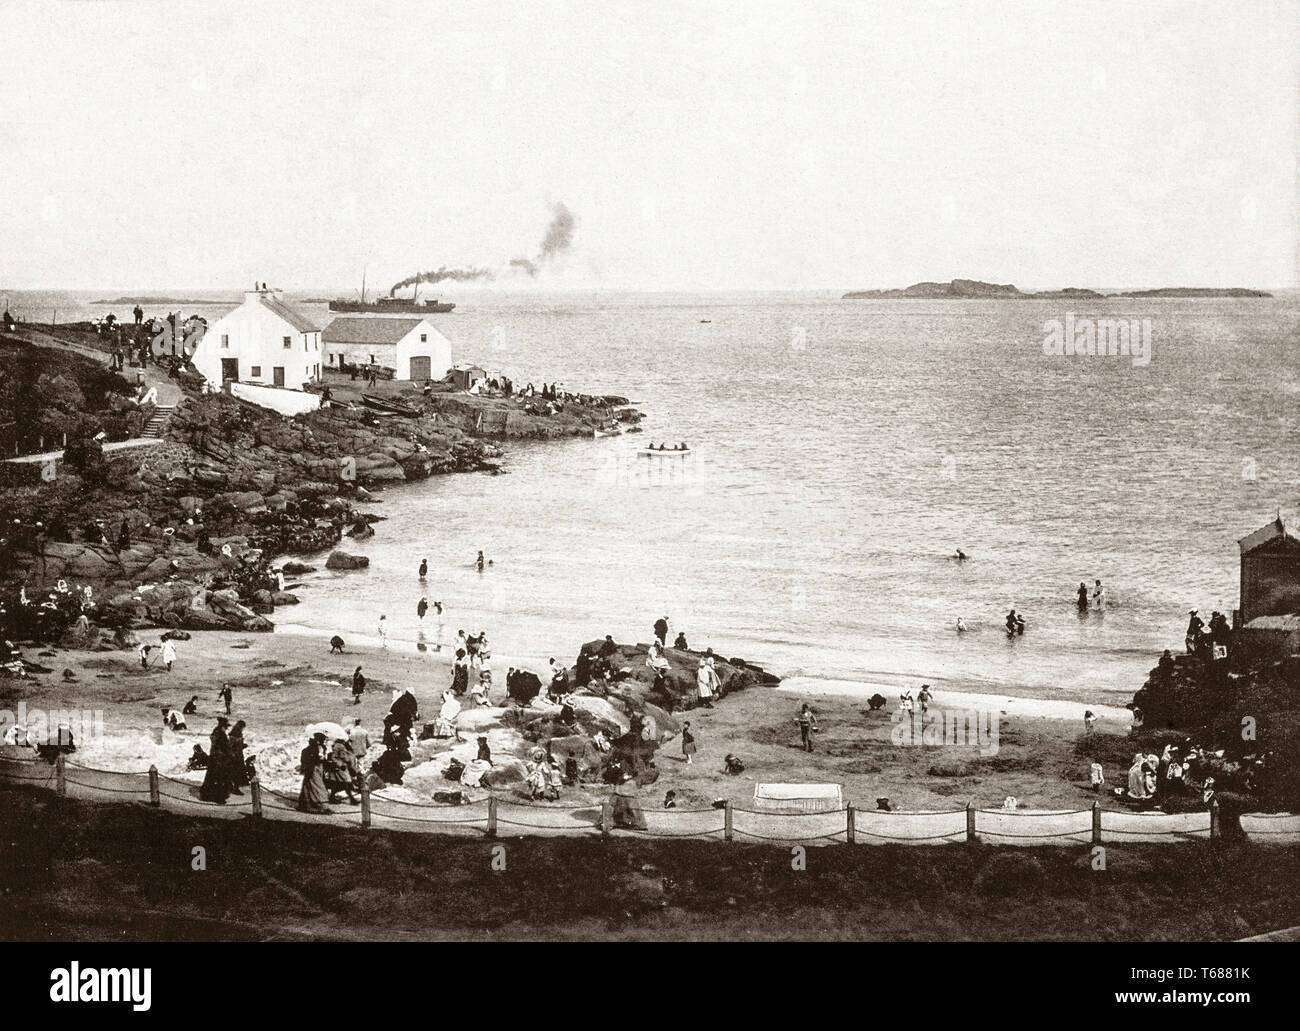 Late 19th Century view of the Bathing Place in Portrush, a small seaside resort town in County Antrim, Northern Ireland. Following the Wars of the Three Kingdoms in the mid-17th century, Portrush grew heavily from a small fishing town in the 19th century as a tourist destination, following the opening of the Ballymena, Ballymoney, Coleraine and Portrush Junction Railway in 1855. - Stock Image